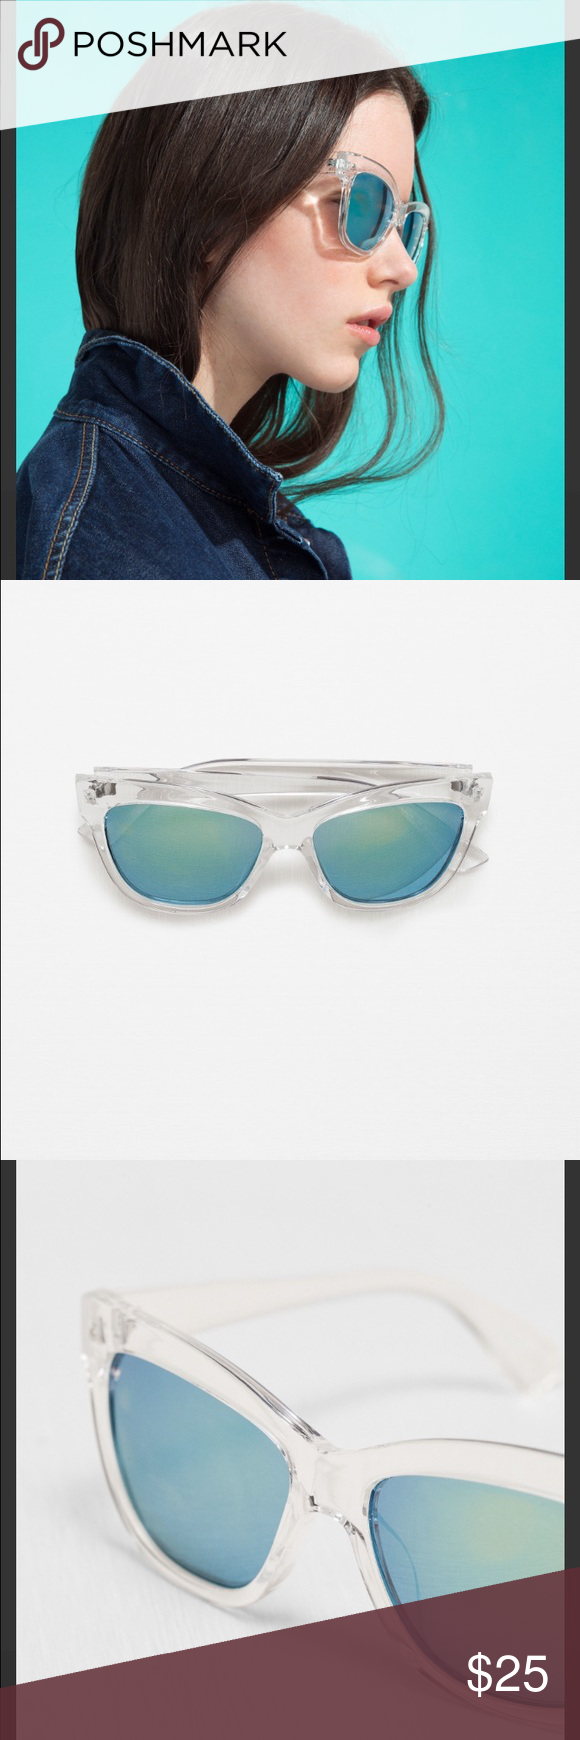 27113223bc22 Zara Cat Eye Sunglasses Clear resin and blue green lenses! So sleek and  stylish. Comes with hard case and drawstring dust bag. Zara Accessories  Sunglasses